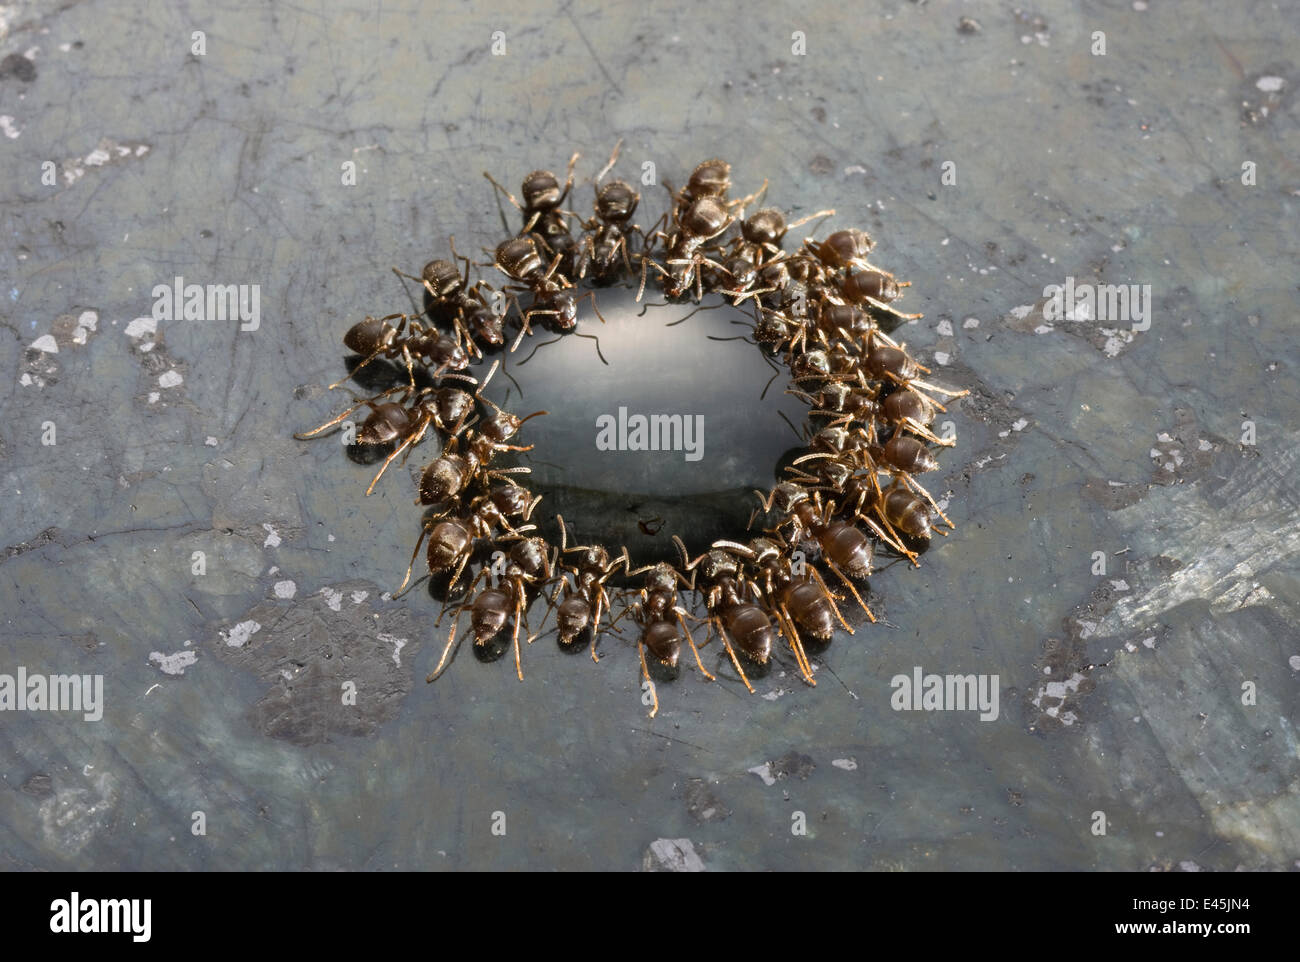 Garden black ants {Lasius niger} feeding on drop of syrup on granite work surface, UK - Stock Image